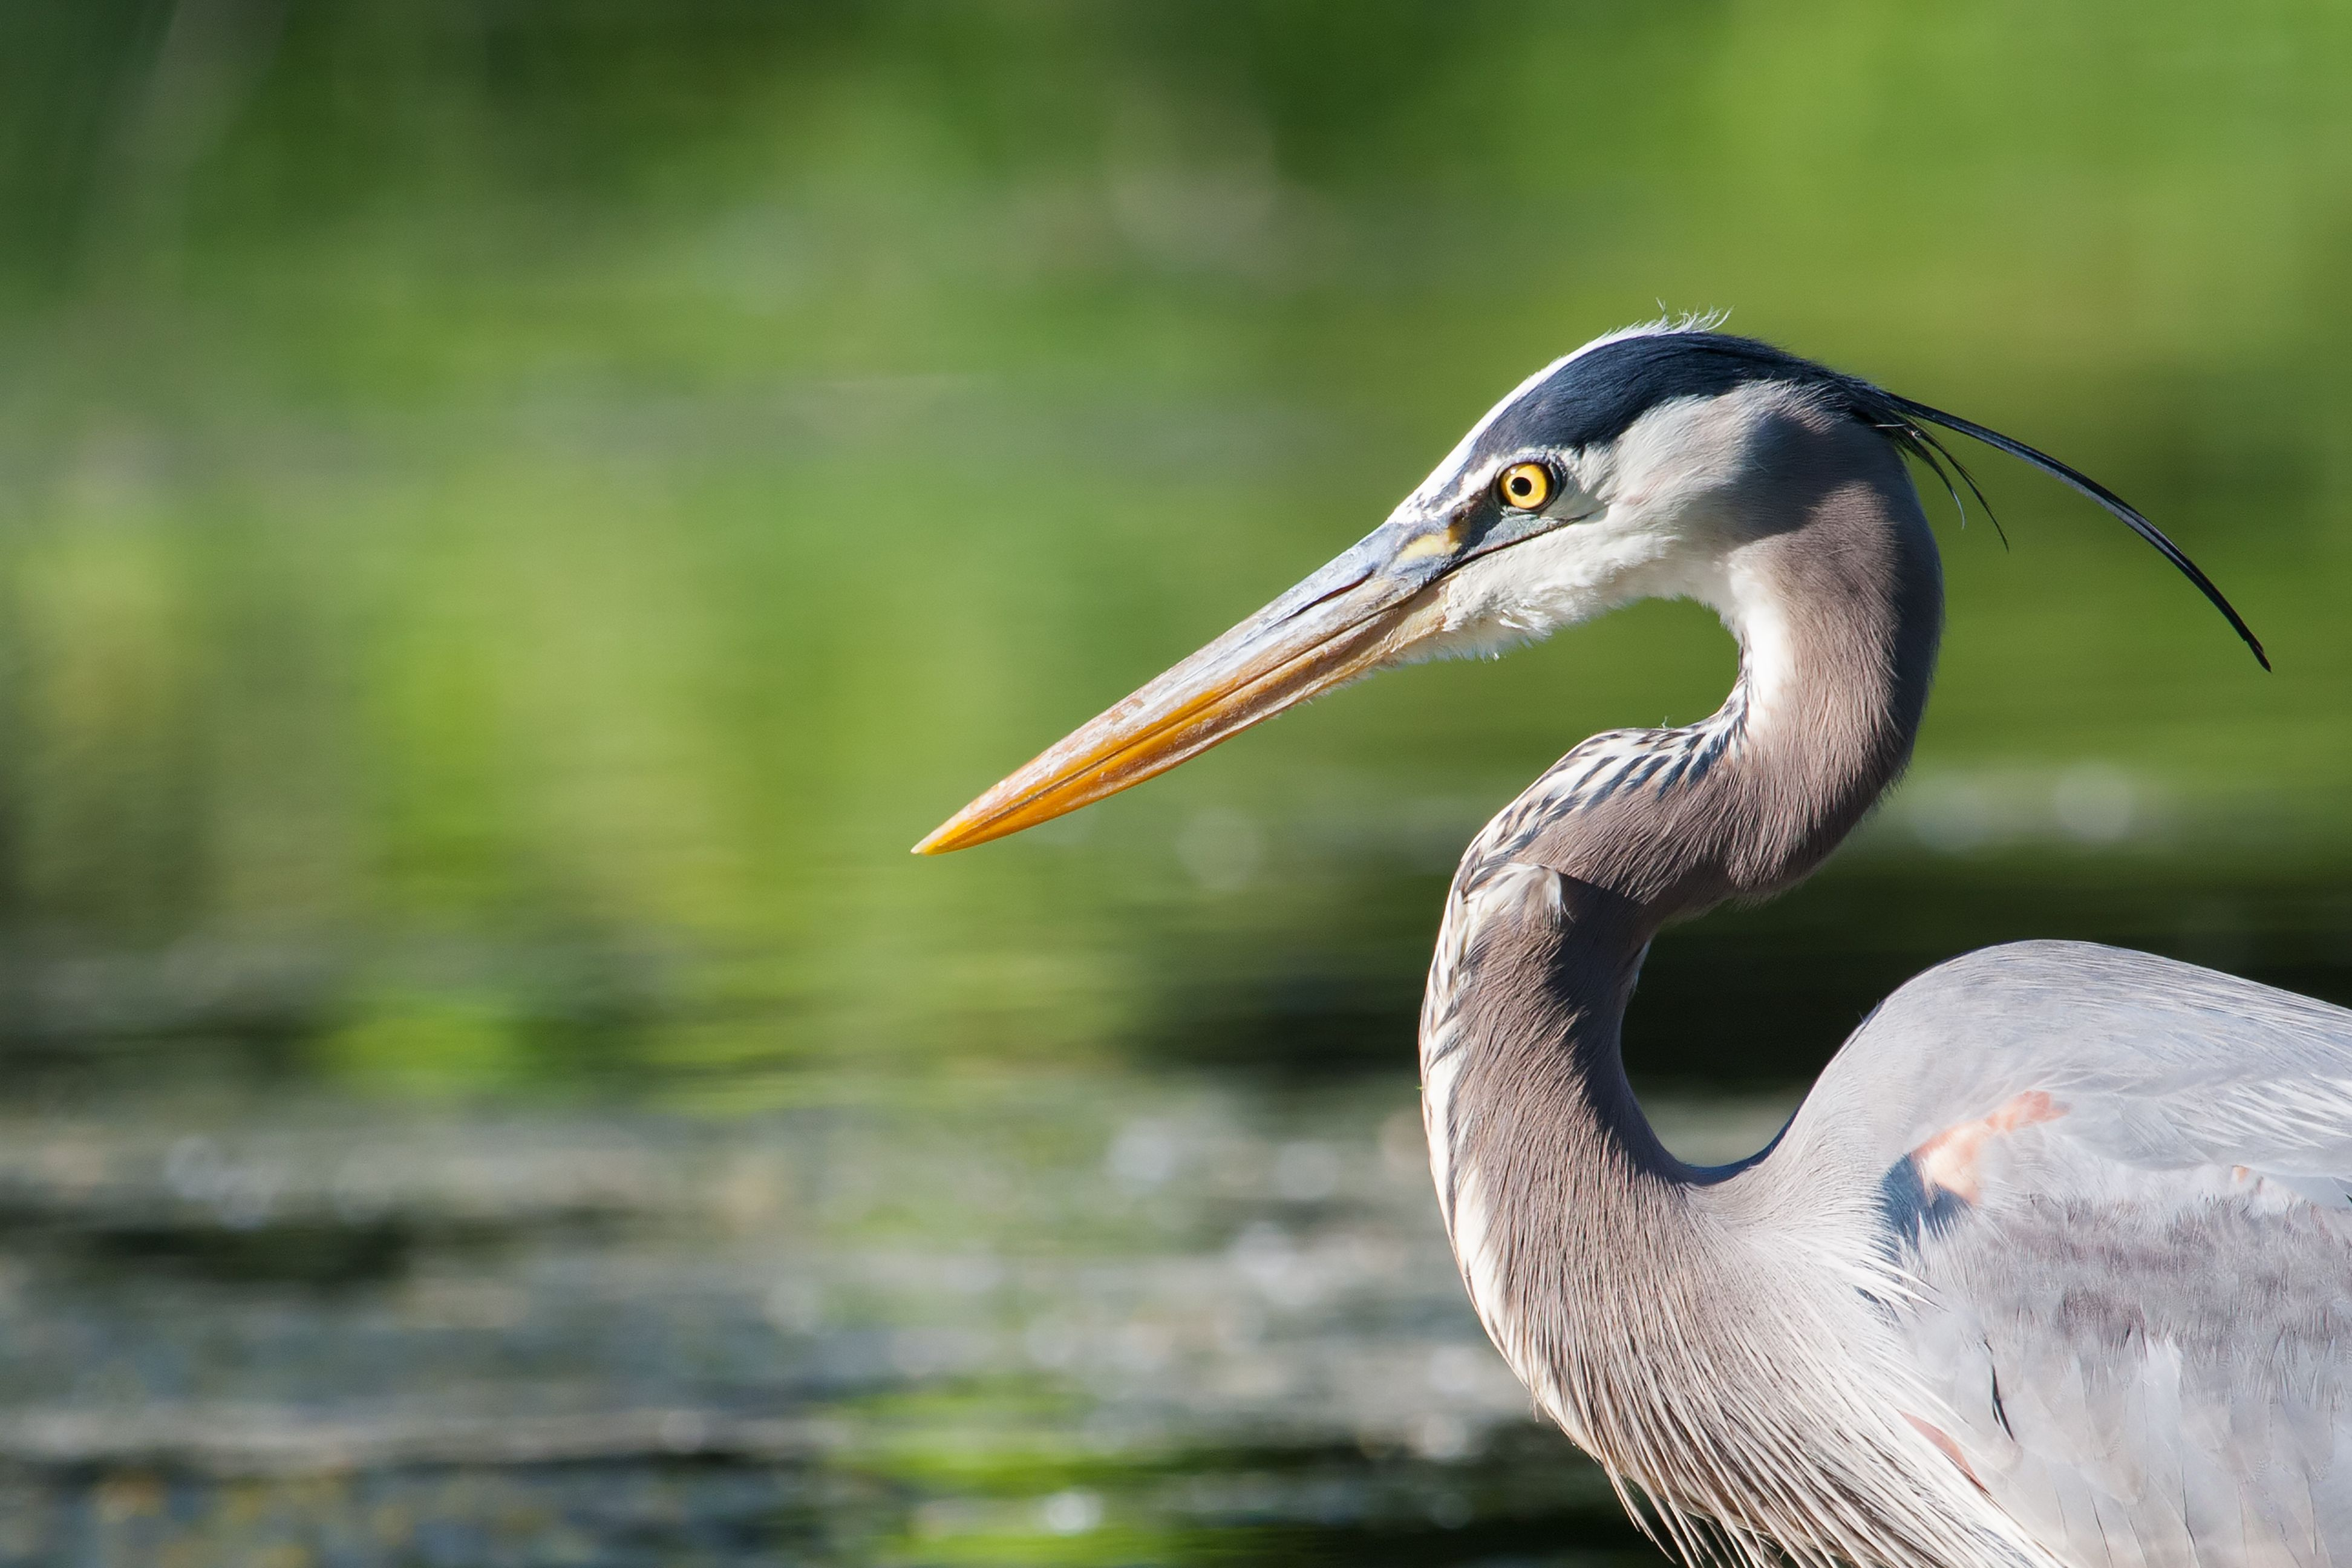 A great blue heron standing in a still pond.